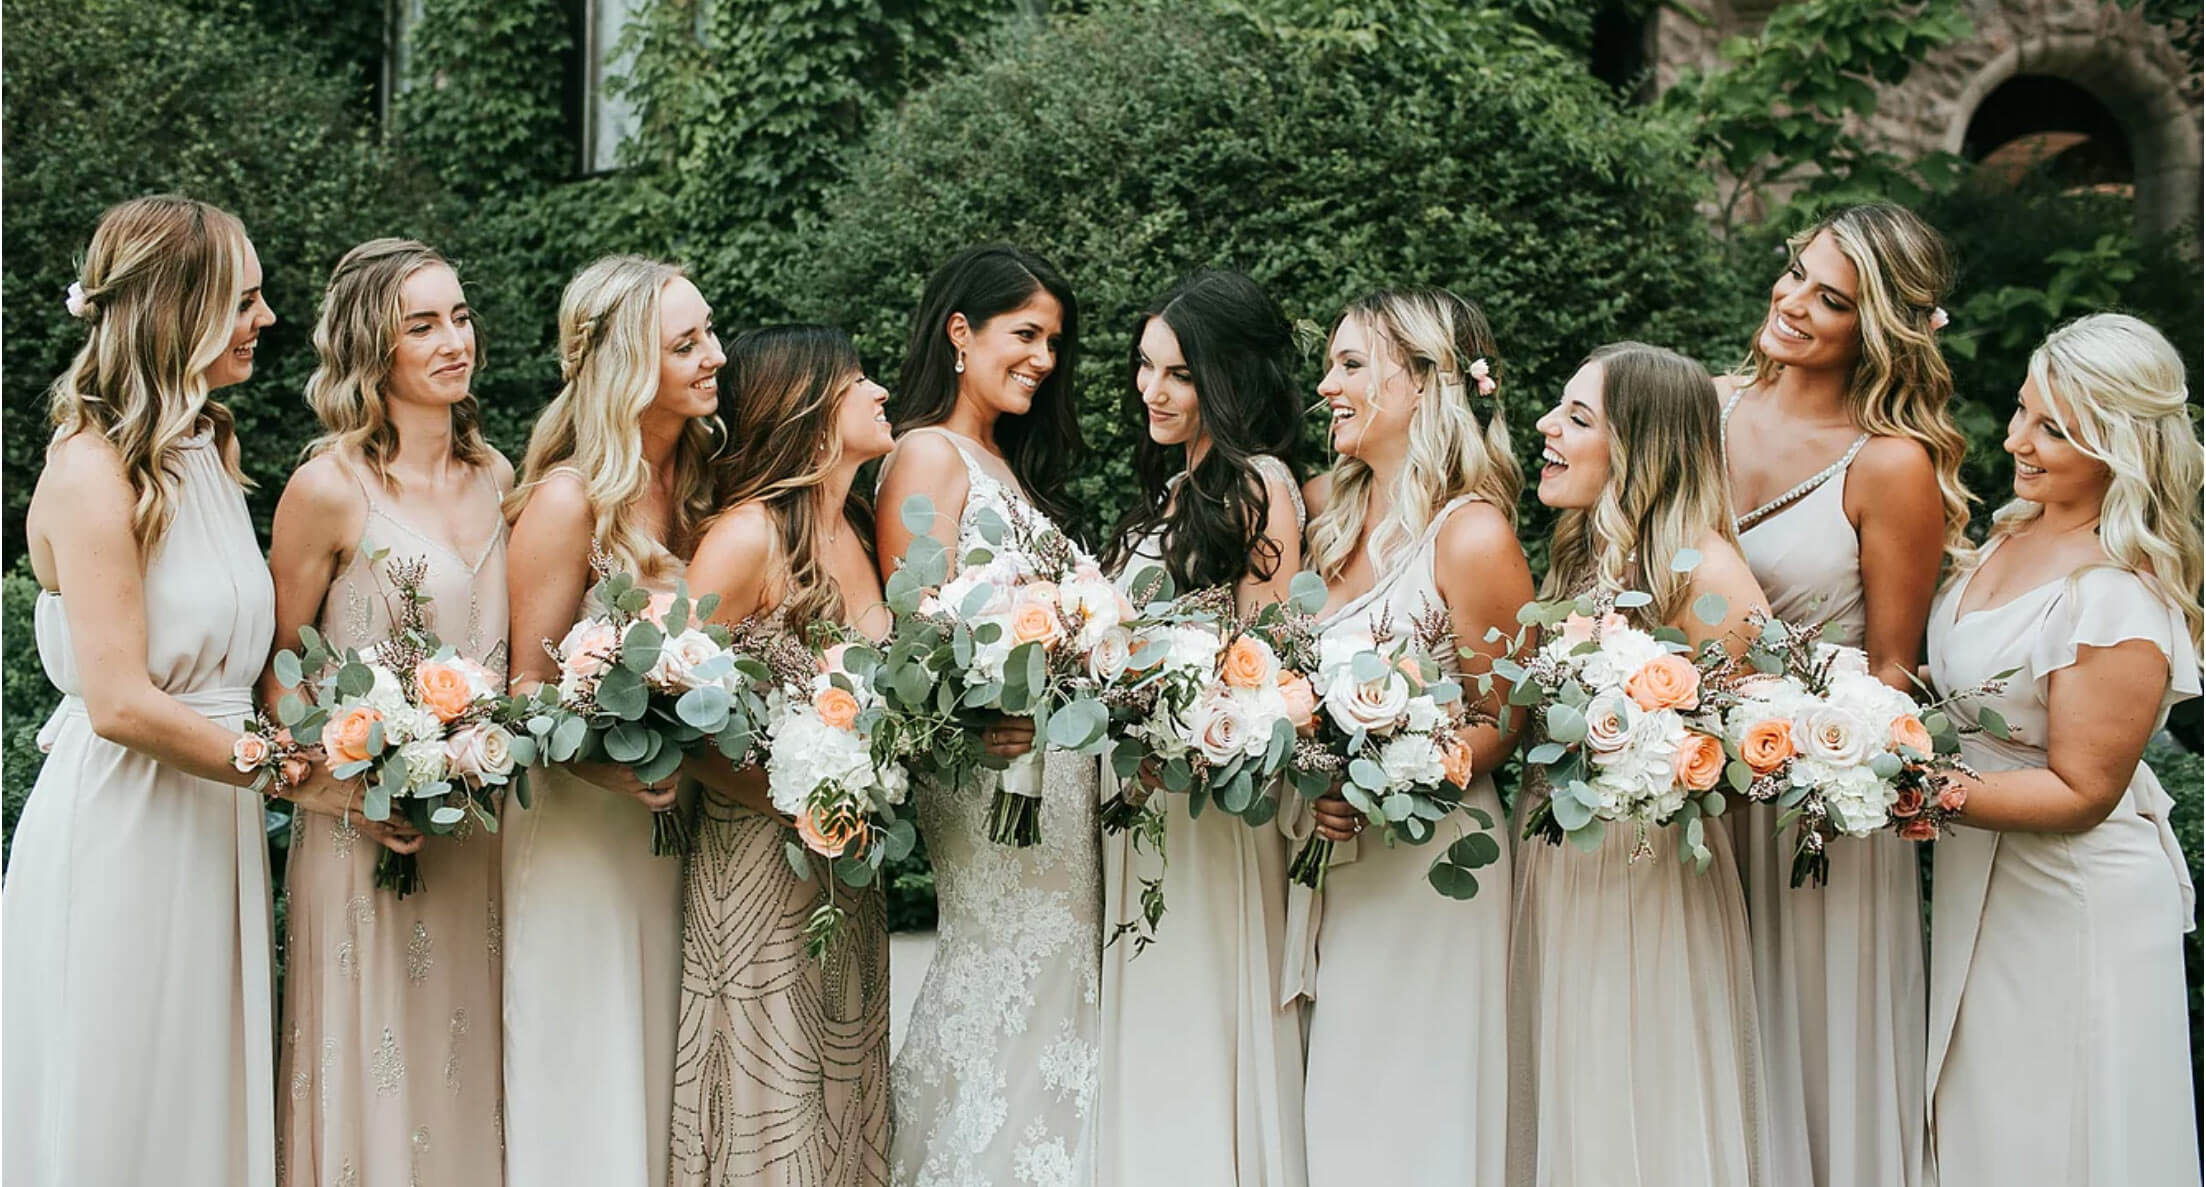 A bridal party holding bouquets admiring the bride.